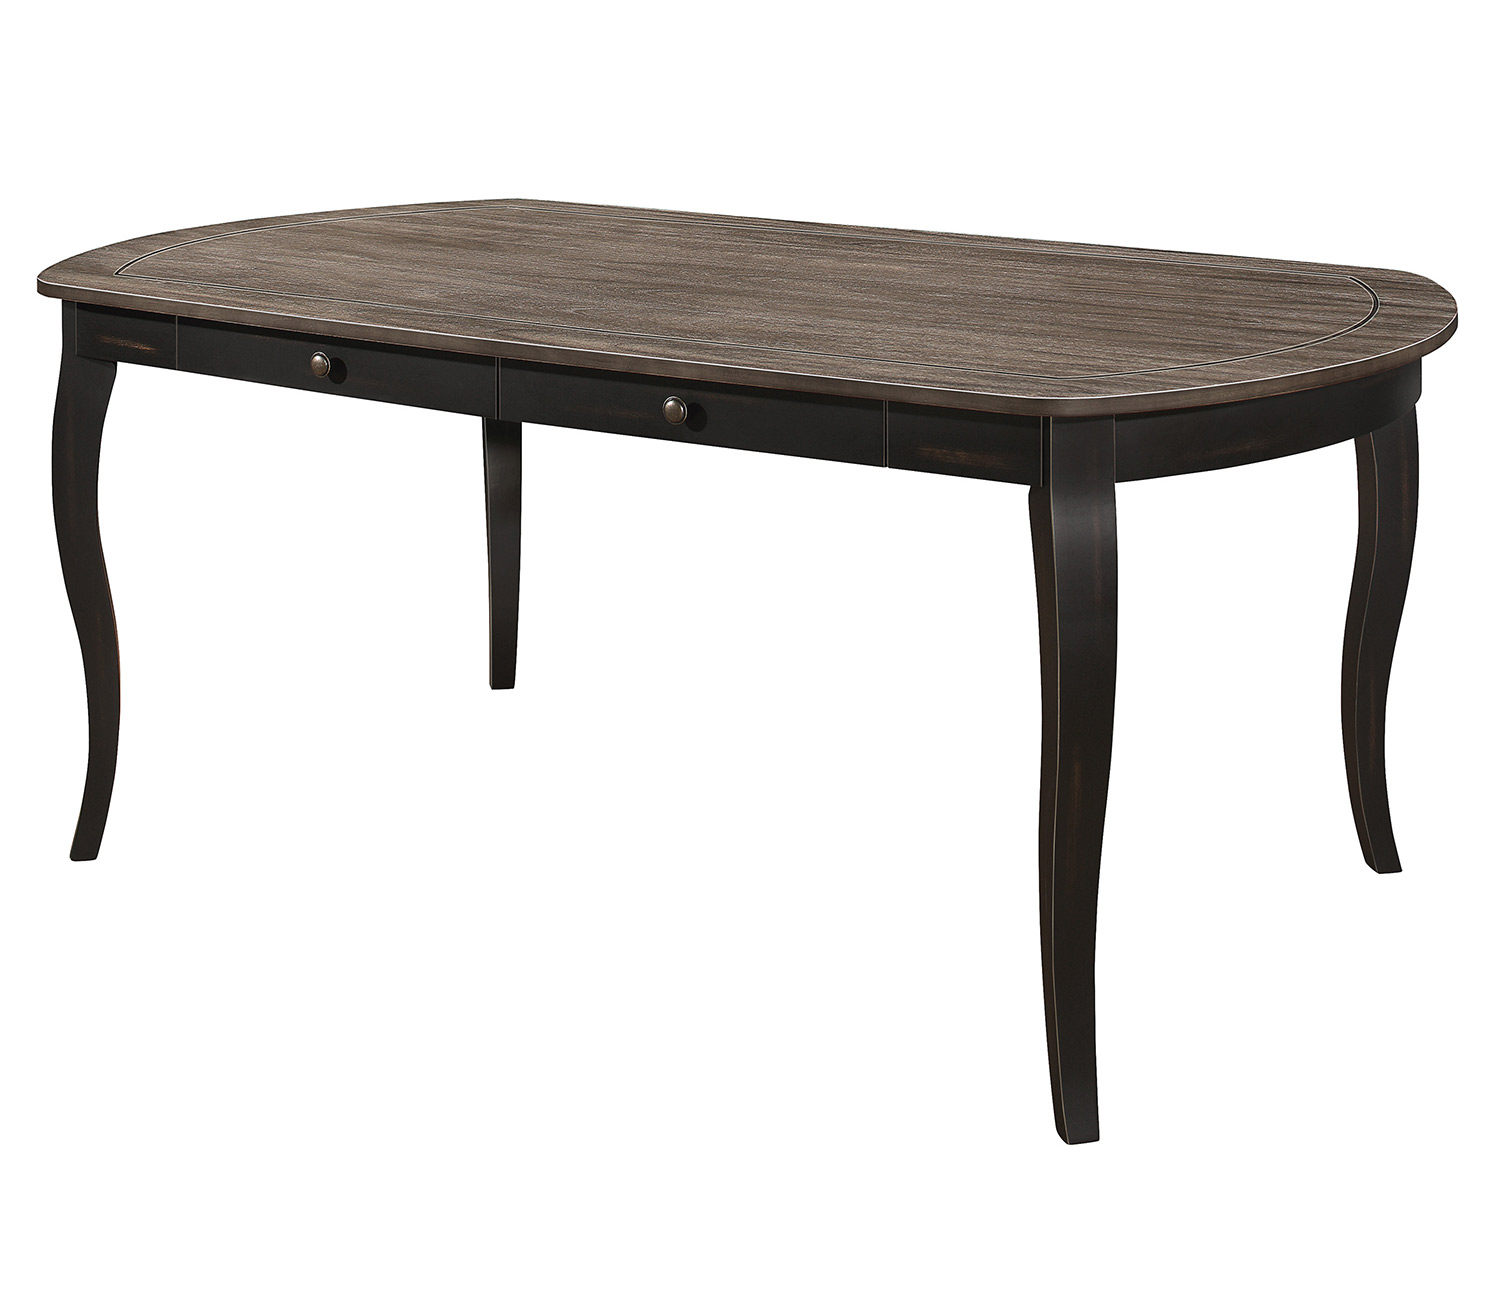 Homelegance Coring Dining Table - Antique 2-Tone